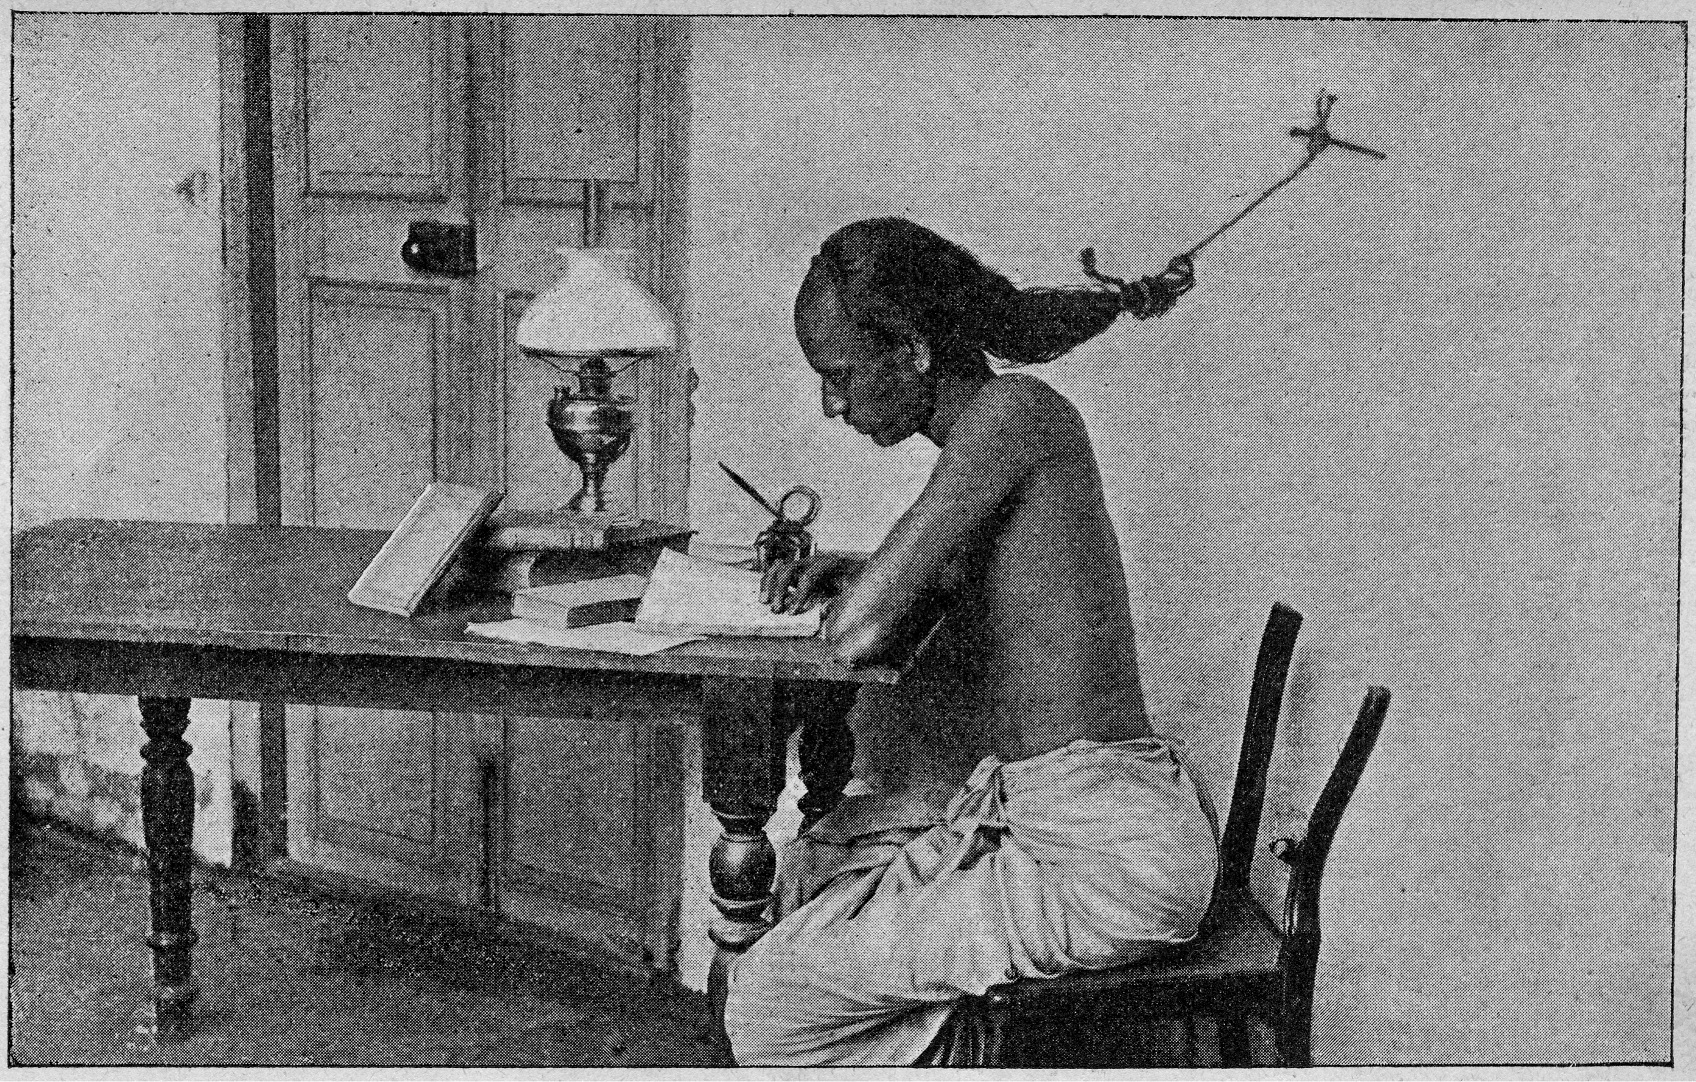 Future of education. Education in ancient India. How to work without anxiety